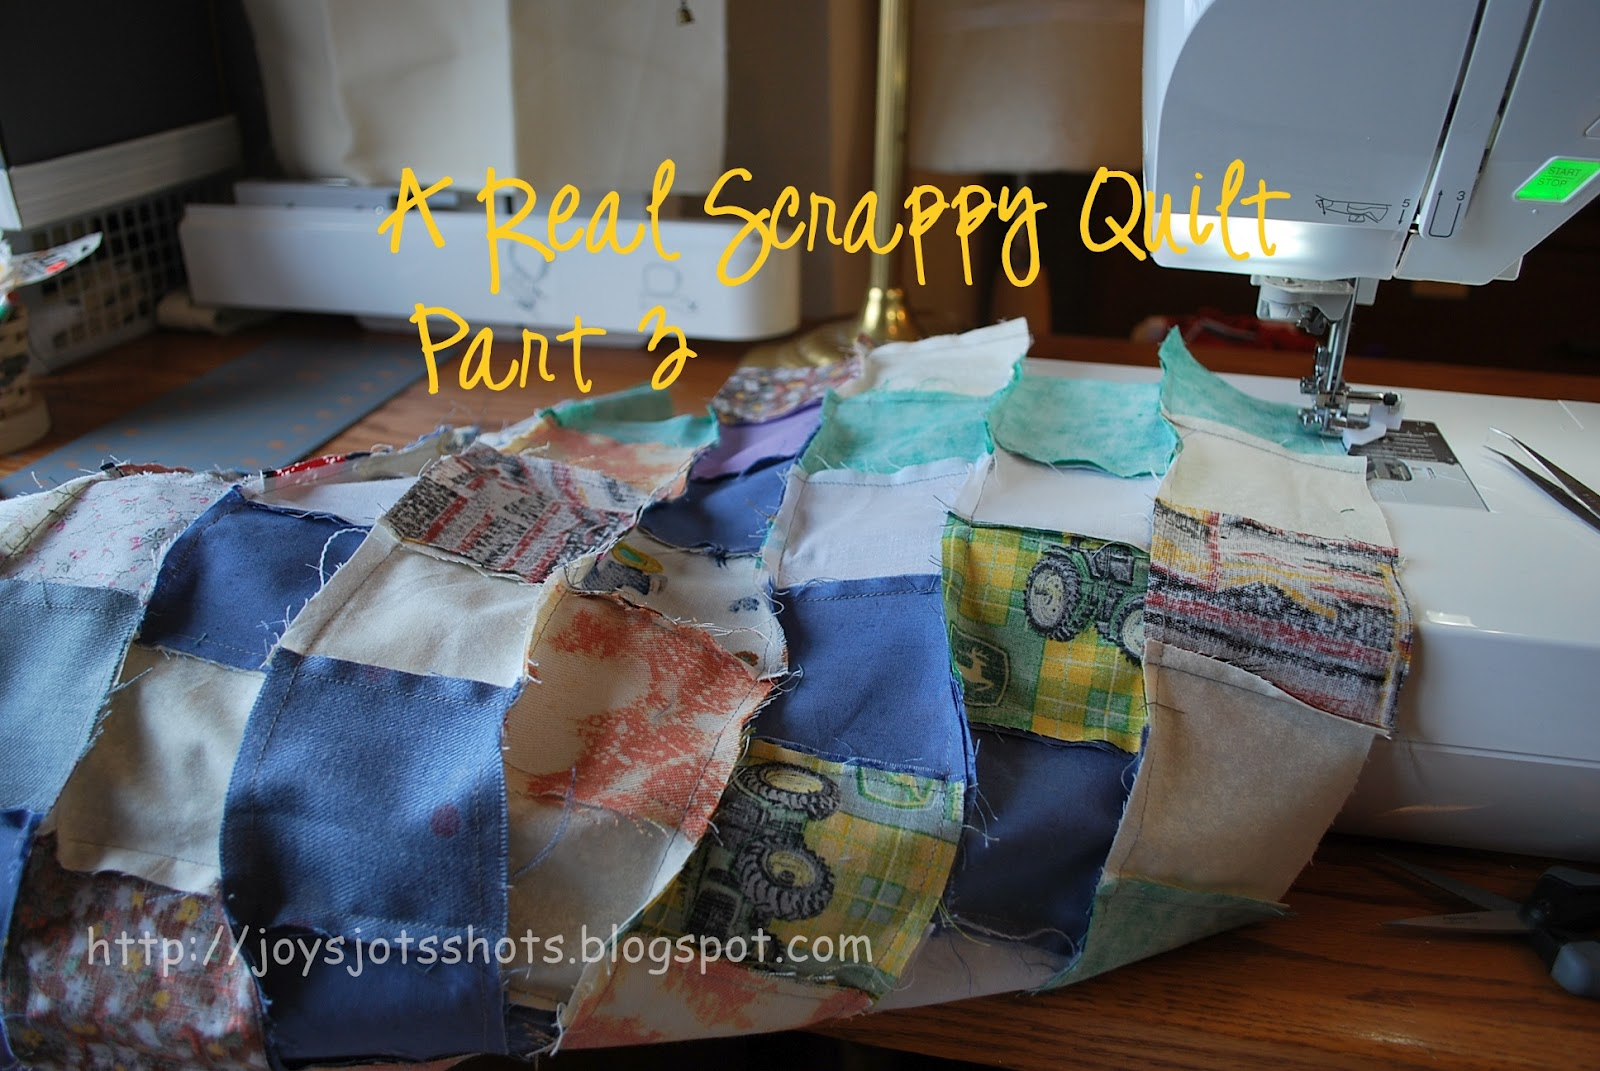 http://joysjotsshots.blogspot.com/2012/03/real-scrappy-quilt-part-3.html